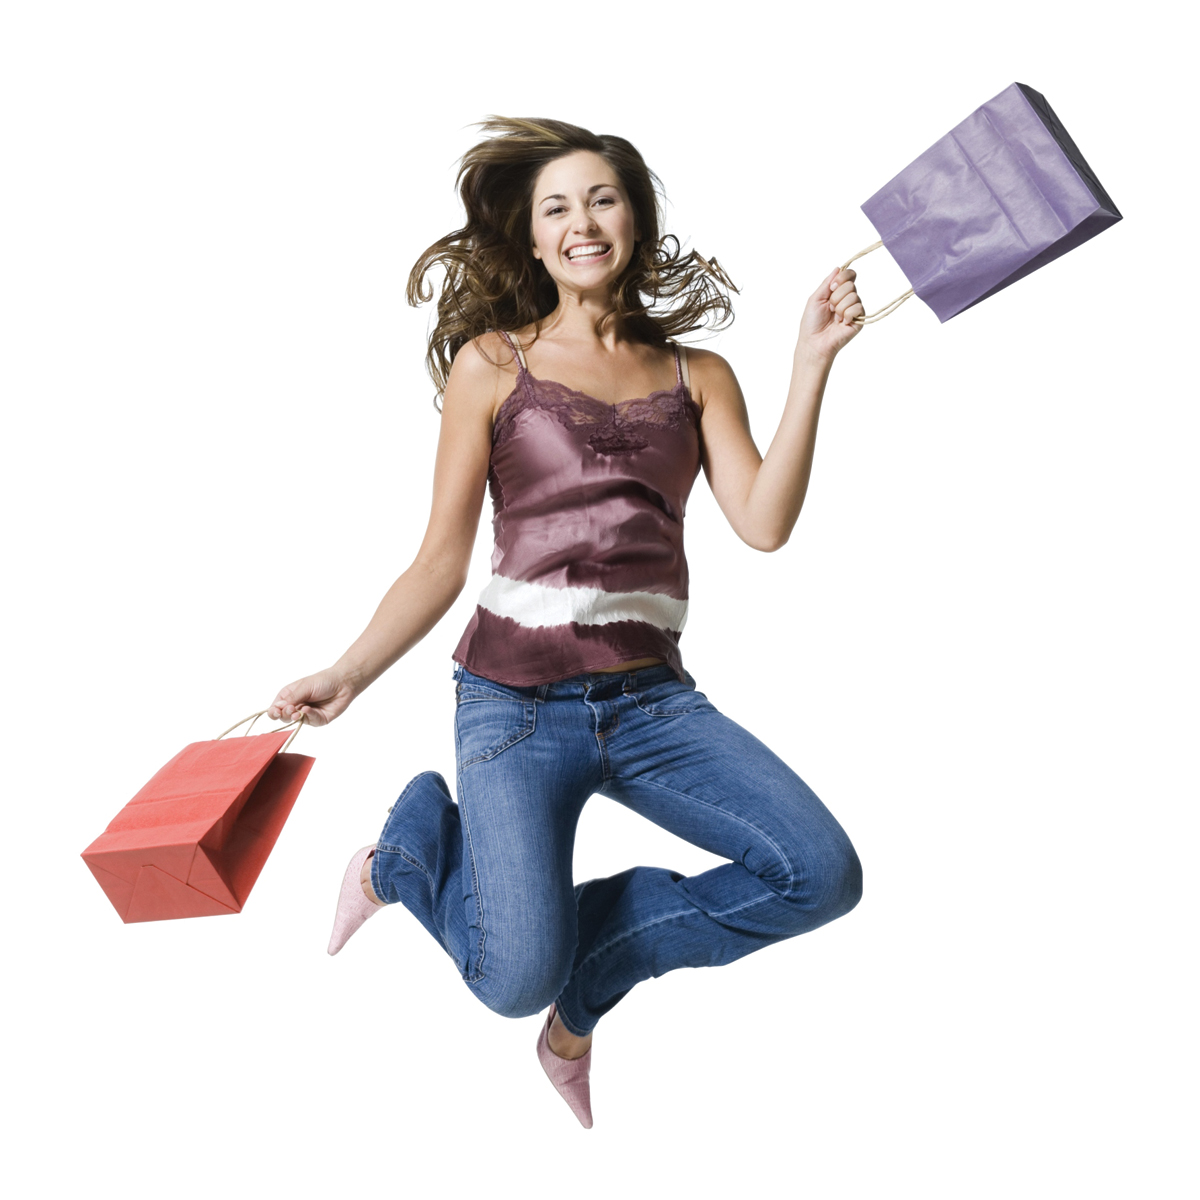 lady jumping in the air with shopping bags